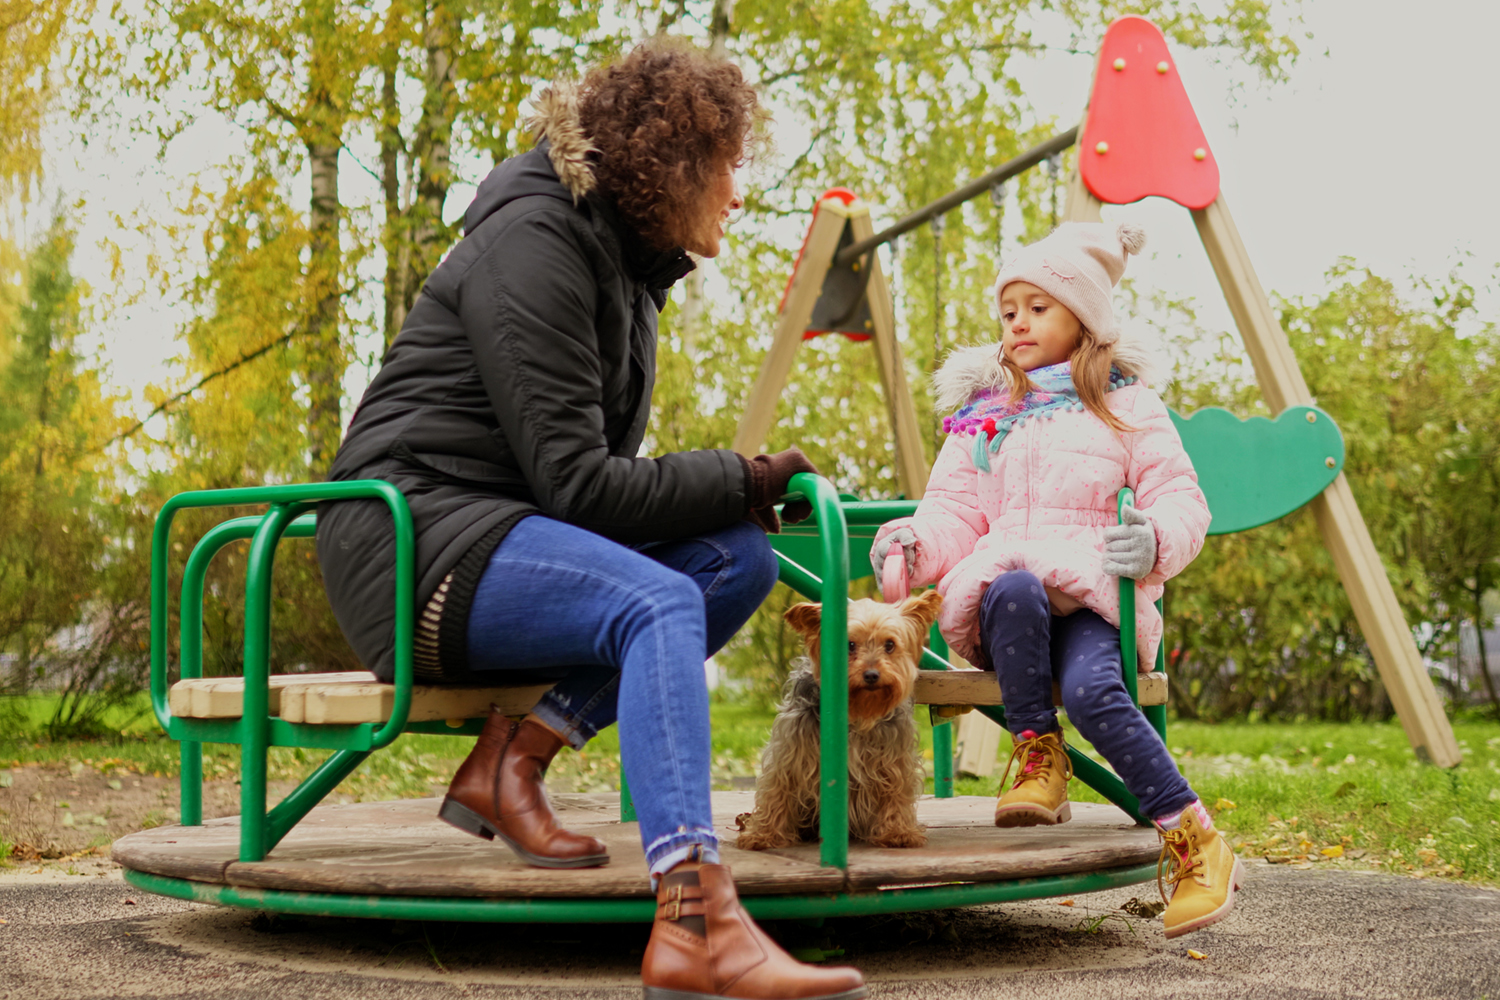 Mother with daughter riding carousel on a playground.